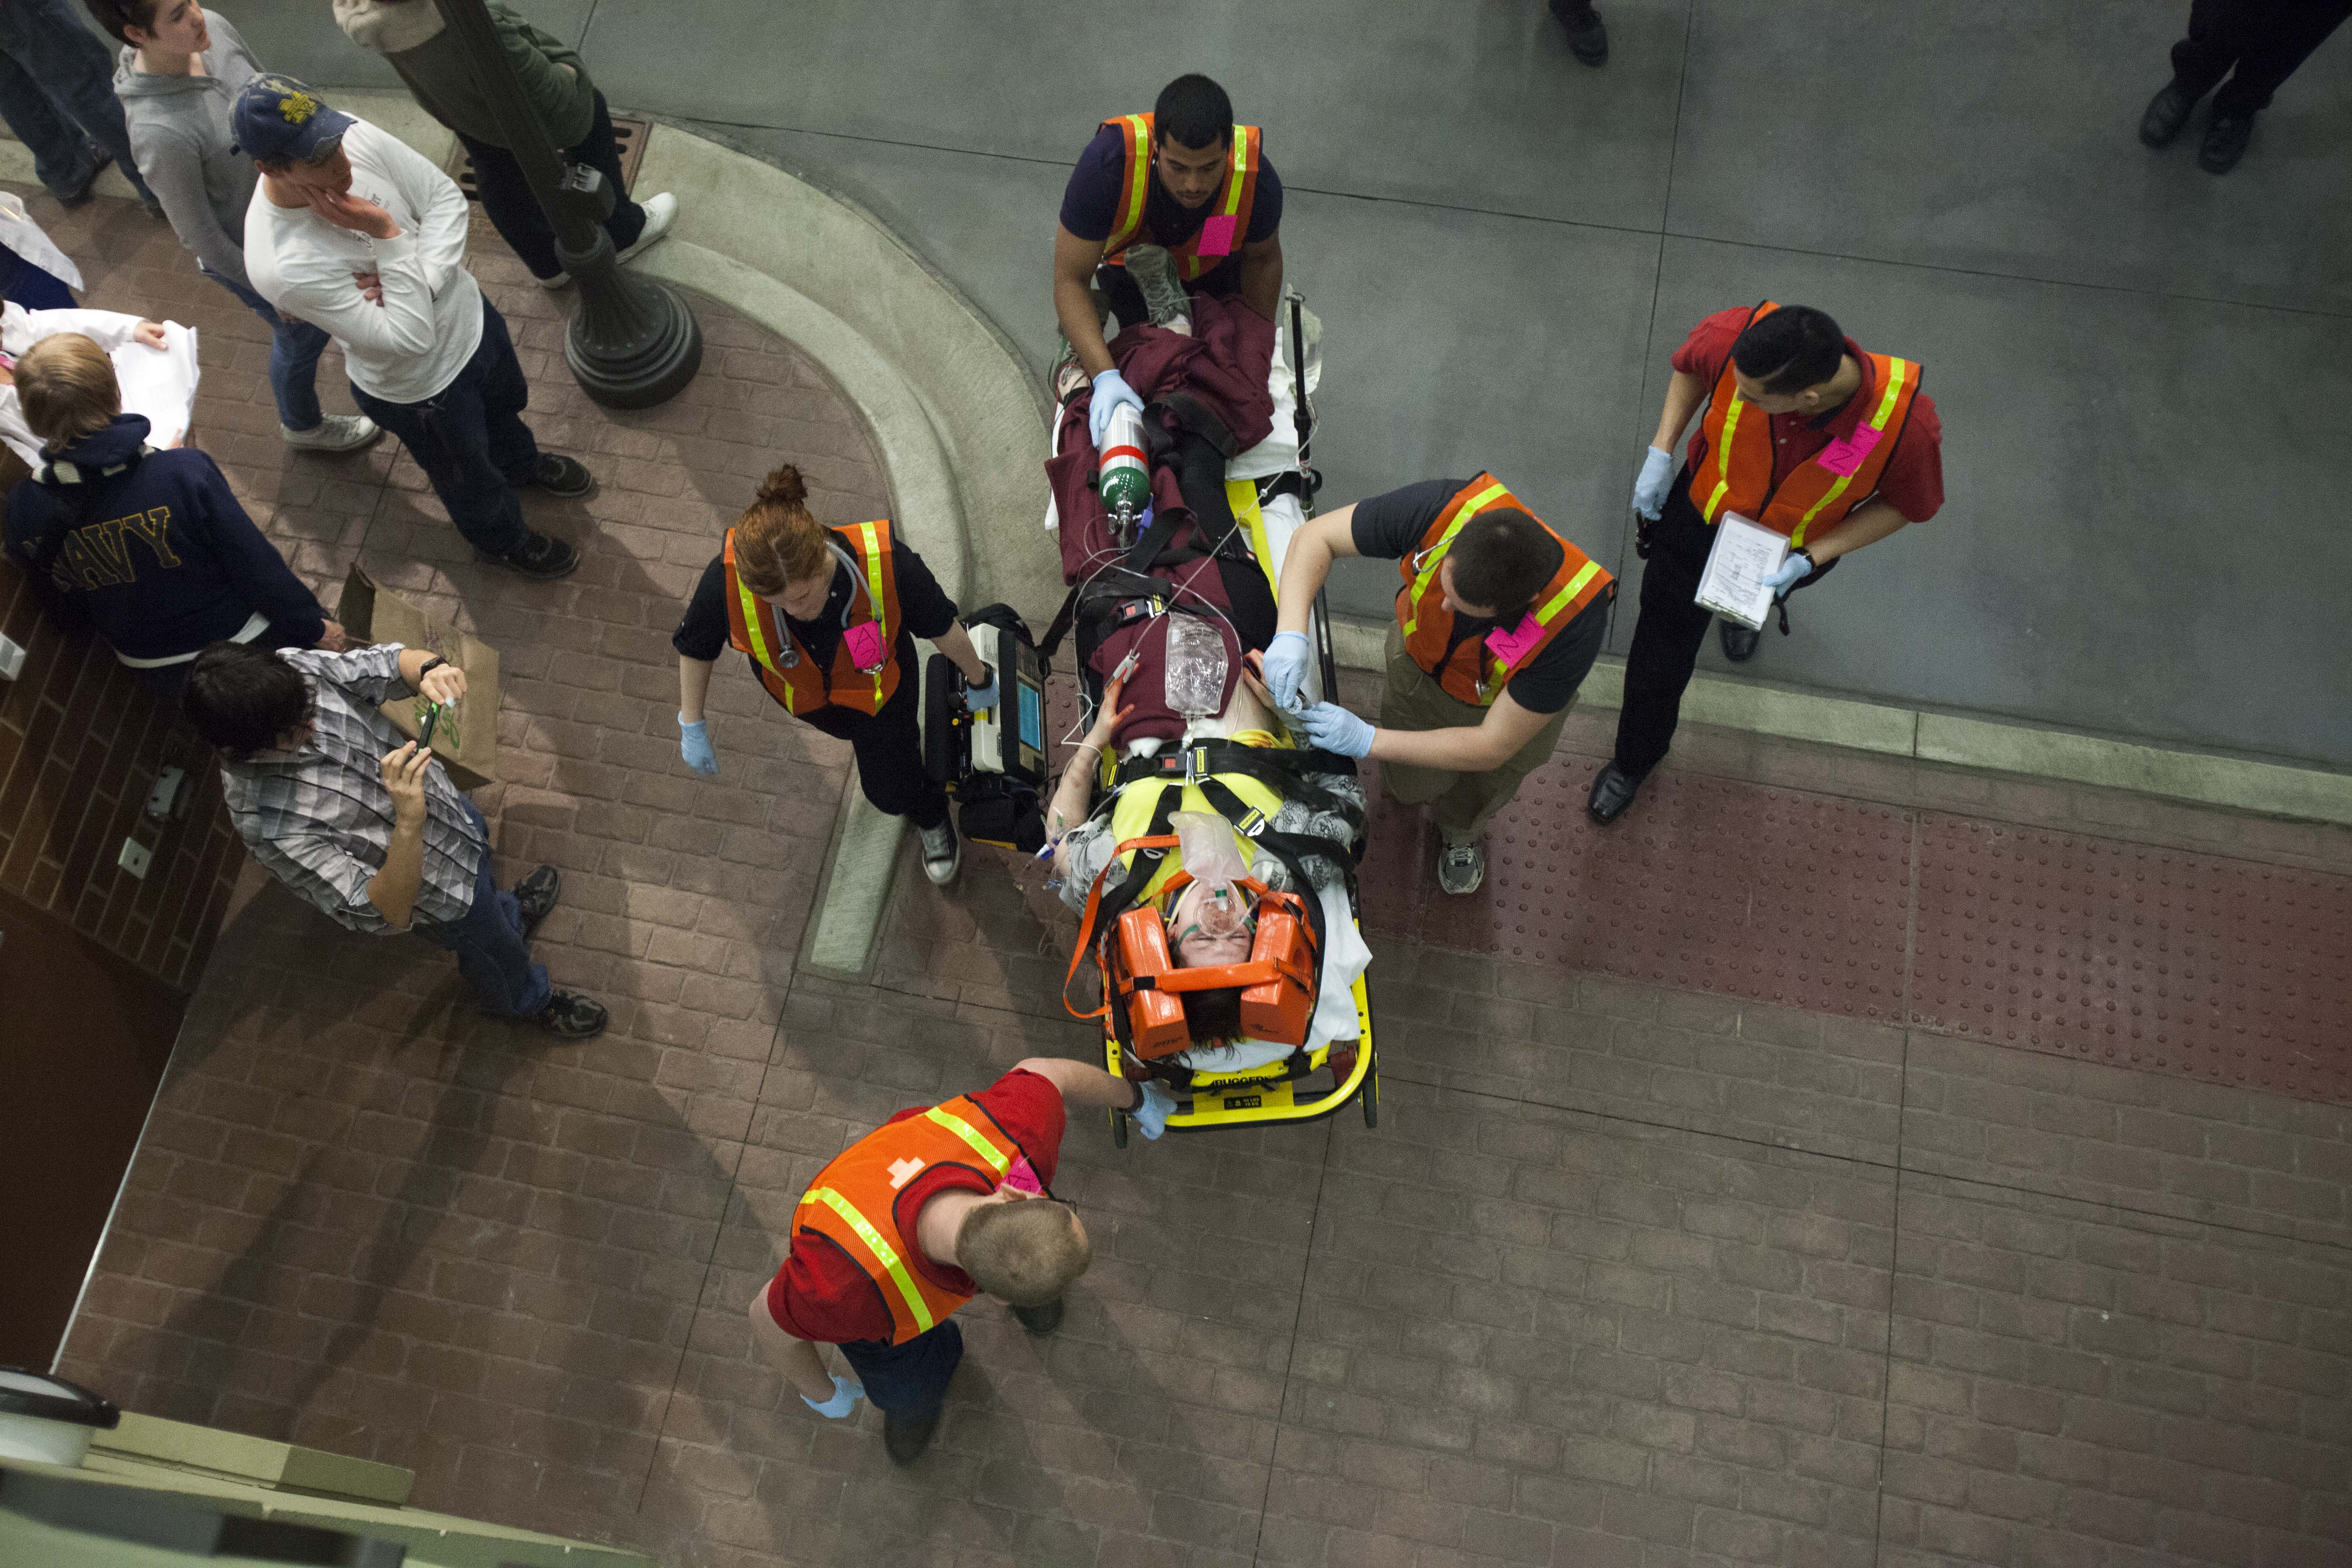 A photo shows the overhead view of a paramedics team of five moving a patient secured on a stretcher through a public place. People stand beside watching them walk away.